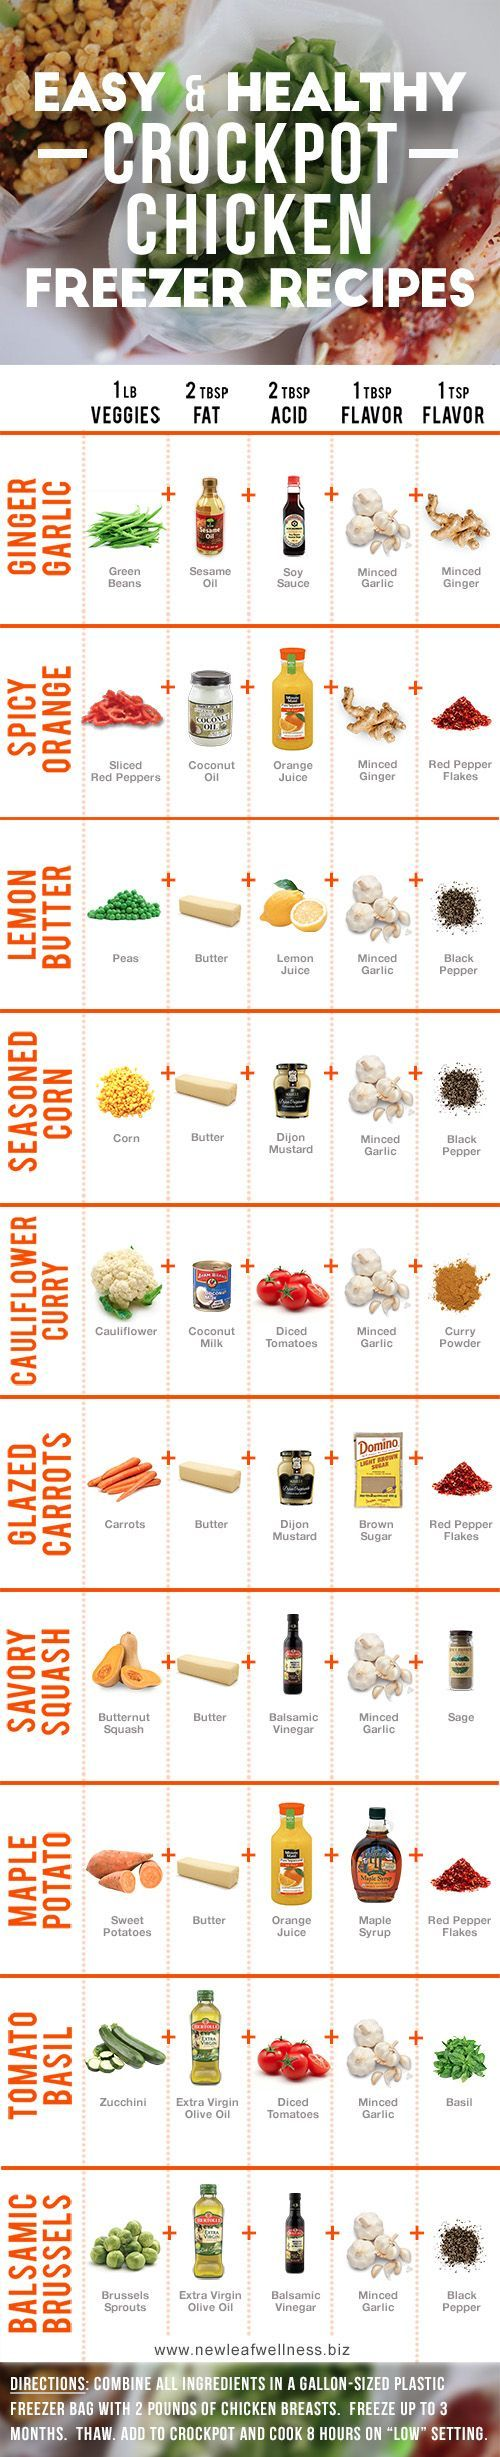 Substitute items for more AIP/Paleo friendly